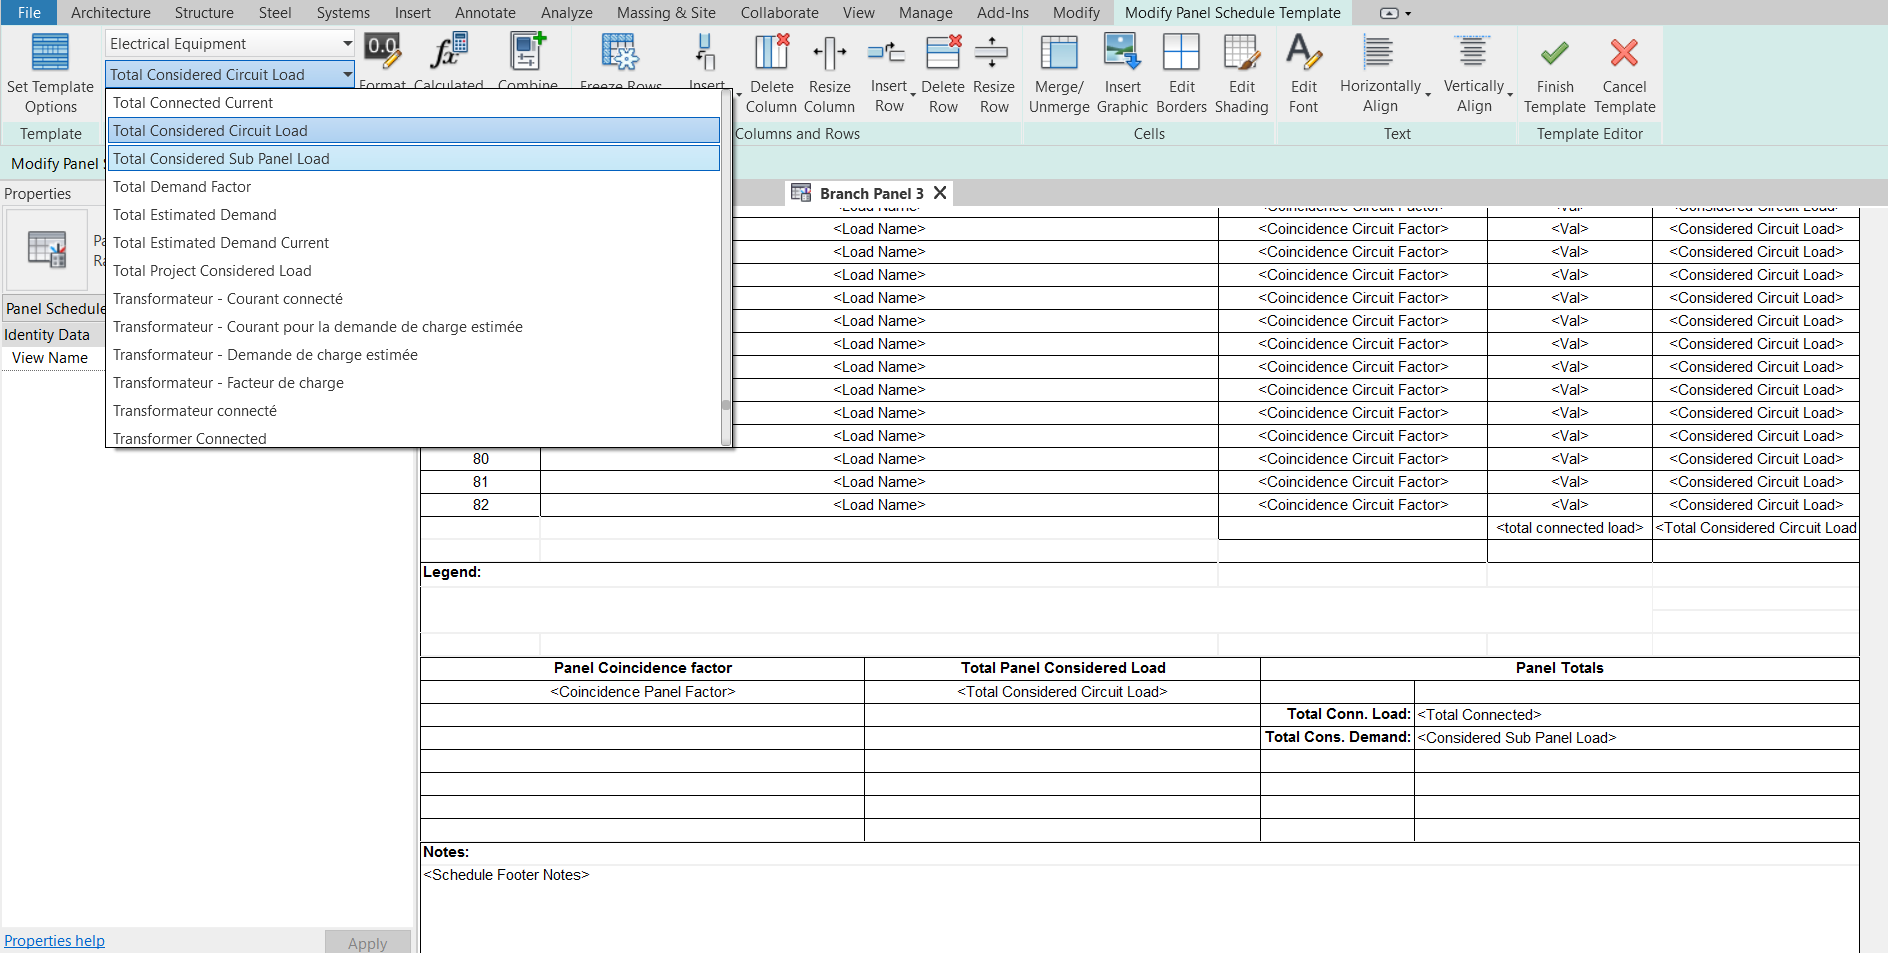 Advanced Panel Schedule Customization For Power Management Revit Products Autodesk Knowledge Network